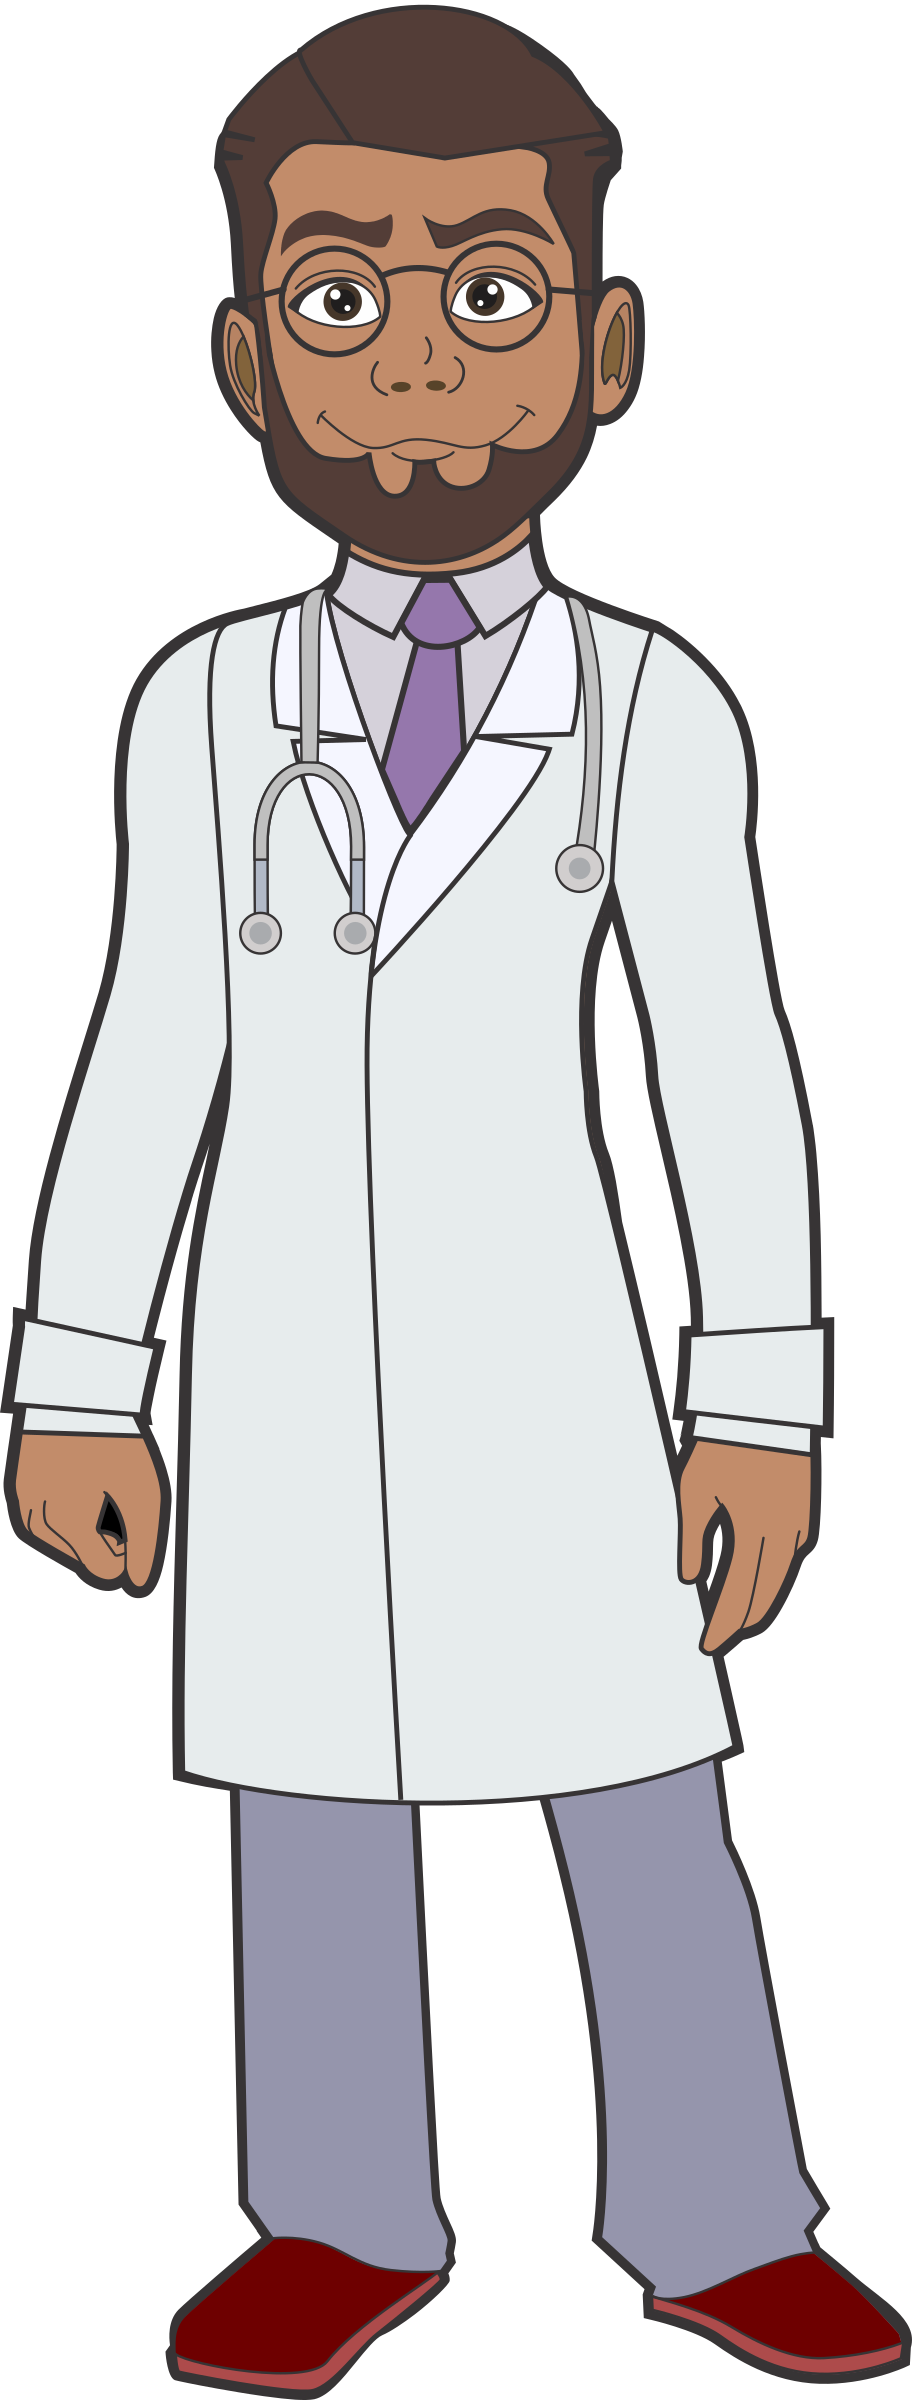 Doctors clipart white coat. African doctor big image